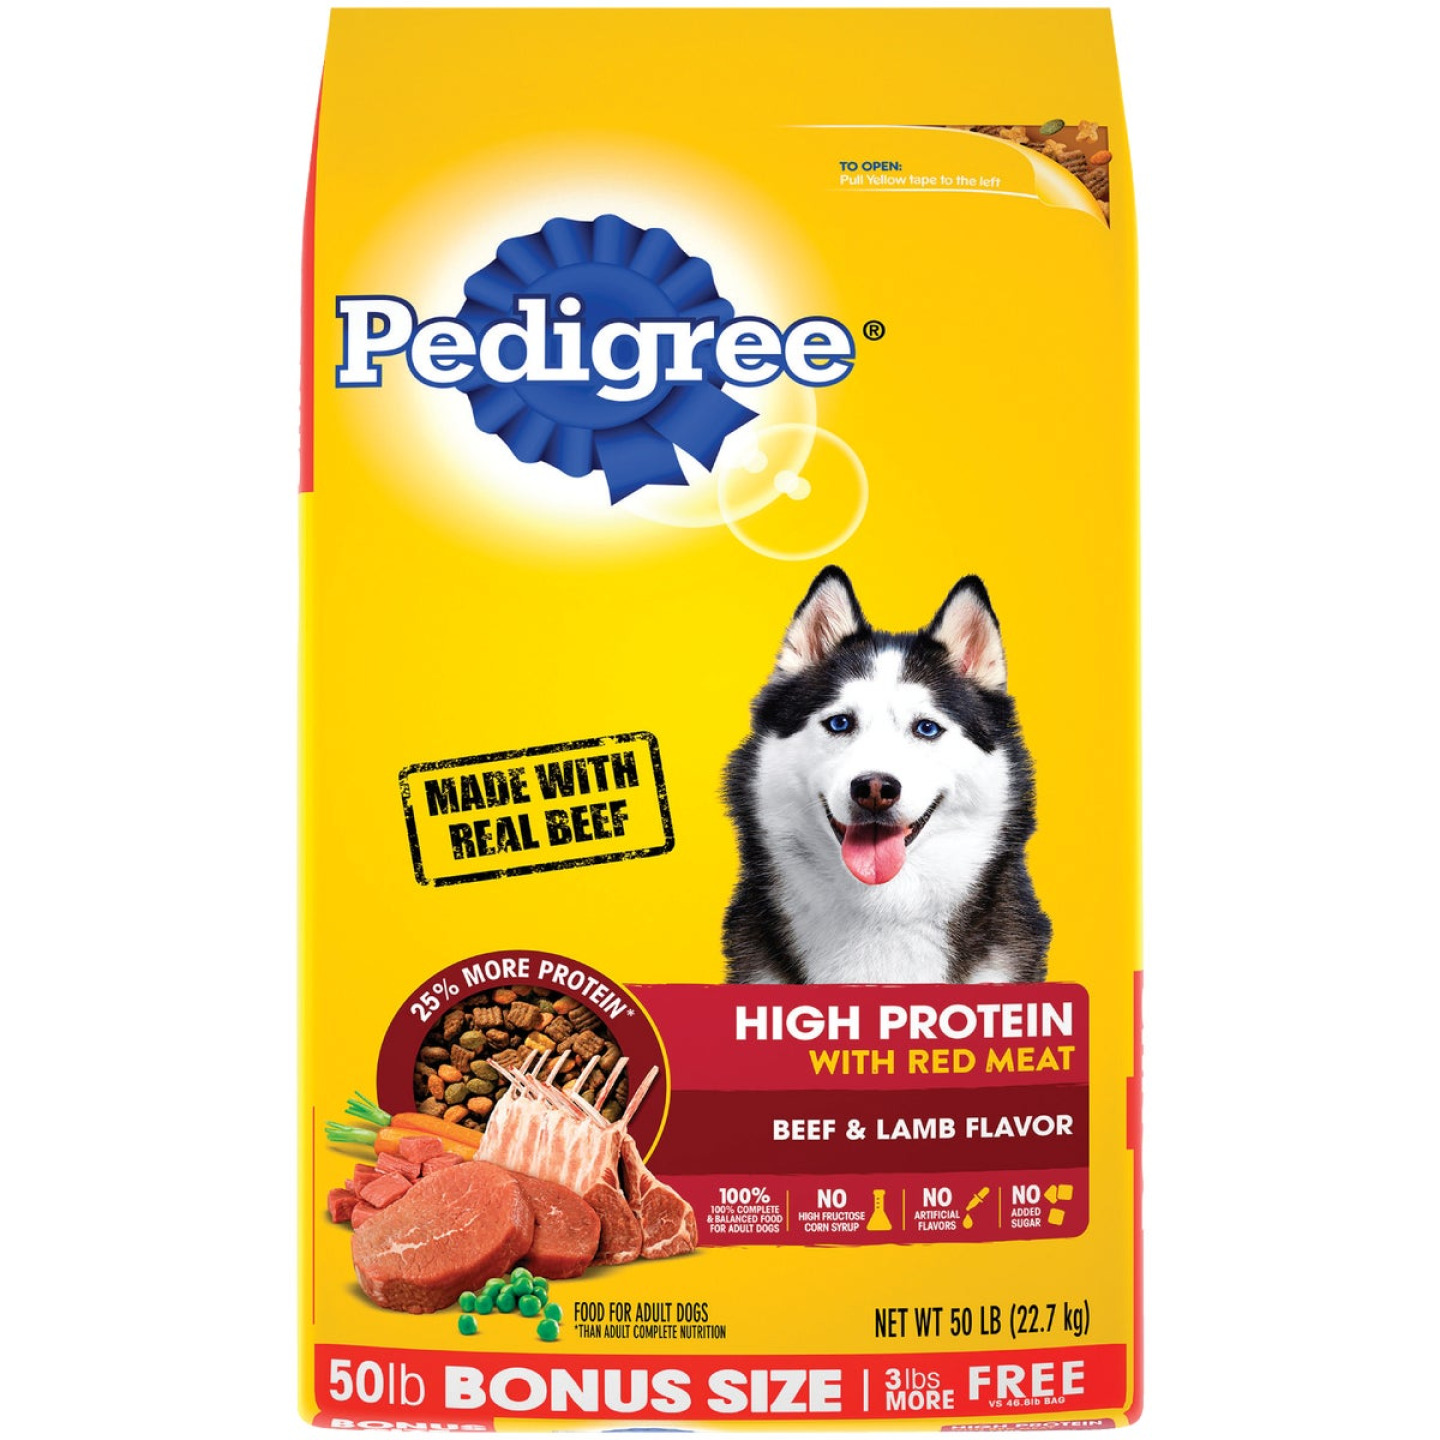 Pedigree 50 Lb. Beef & Lamb High Protein Adult Dry Dog Food Image 1